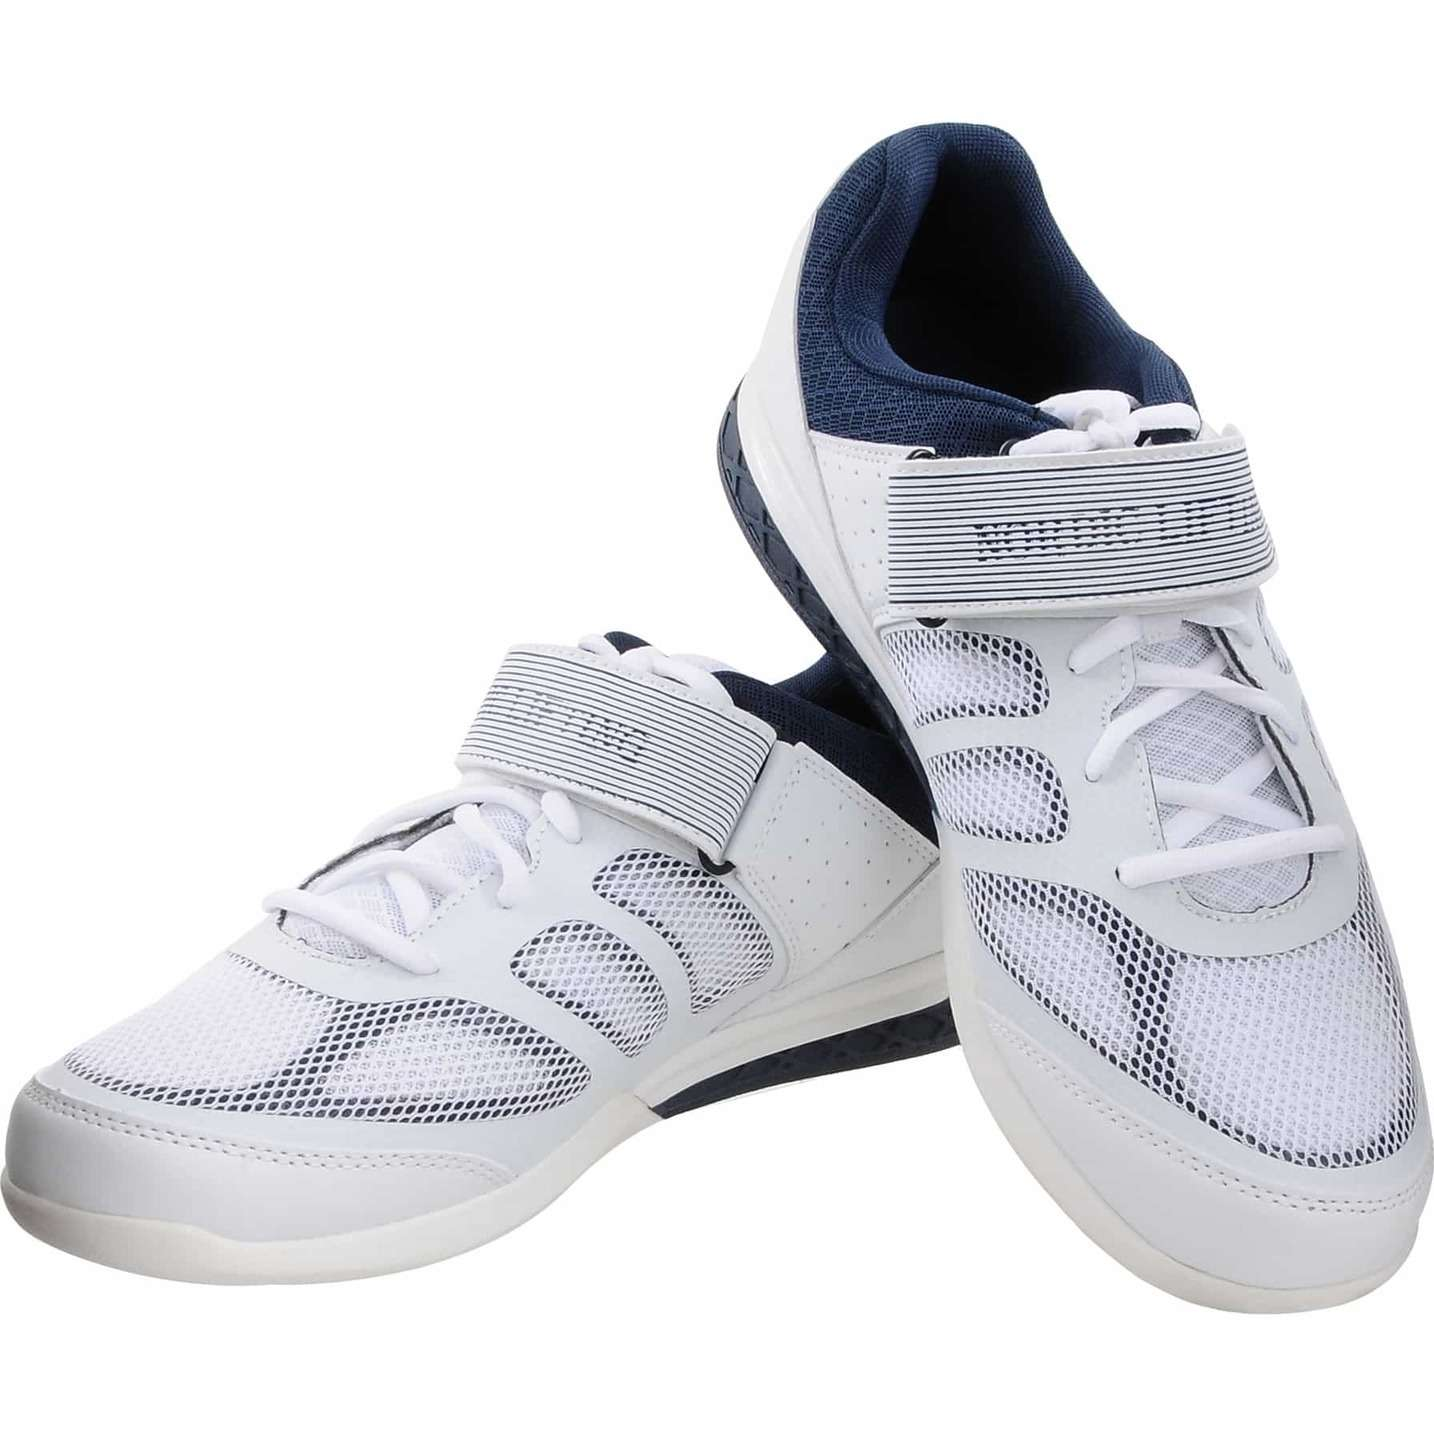 Nordic Lifting - Weightlifting Shoes